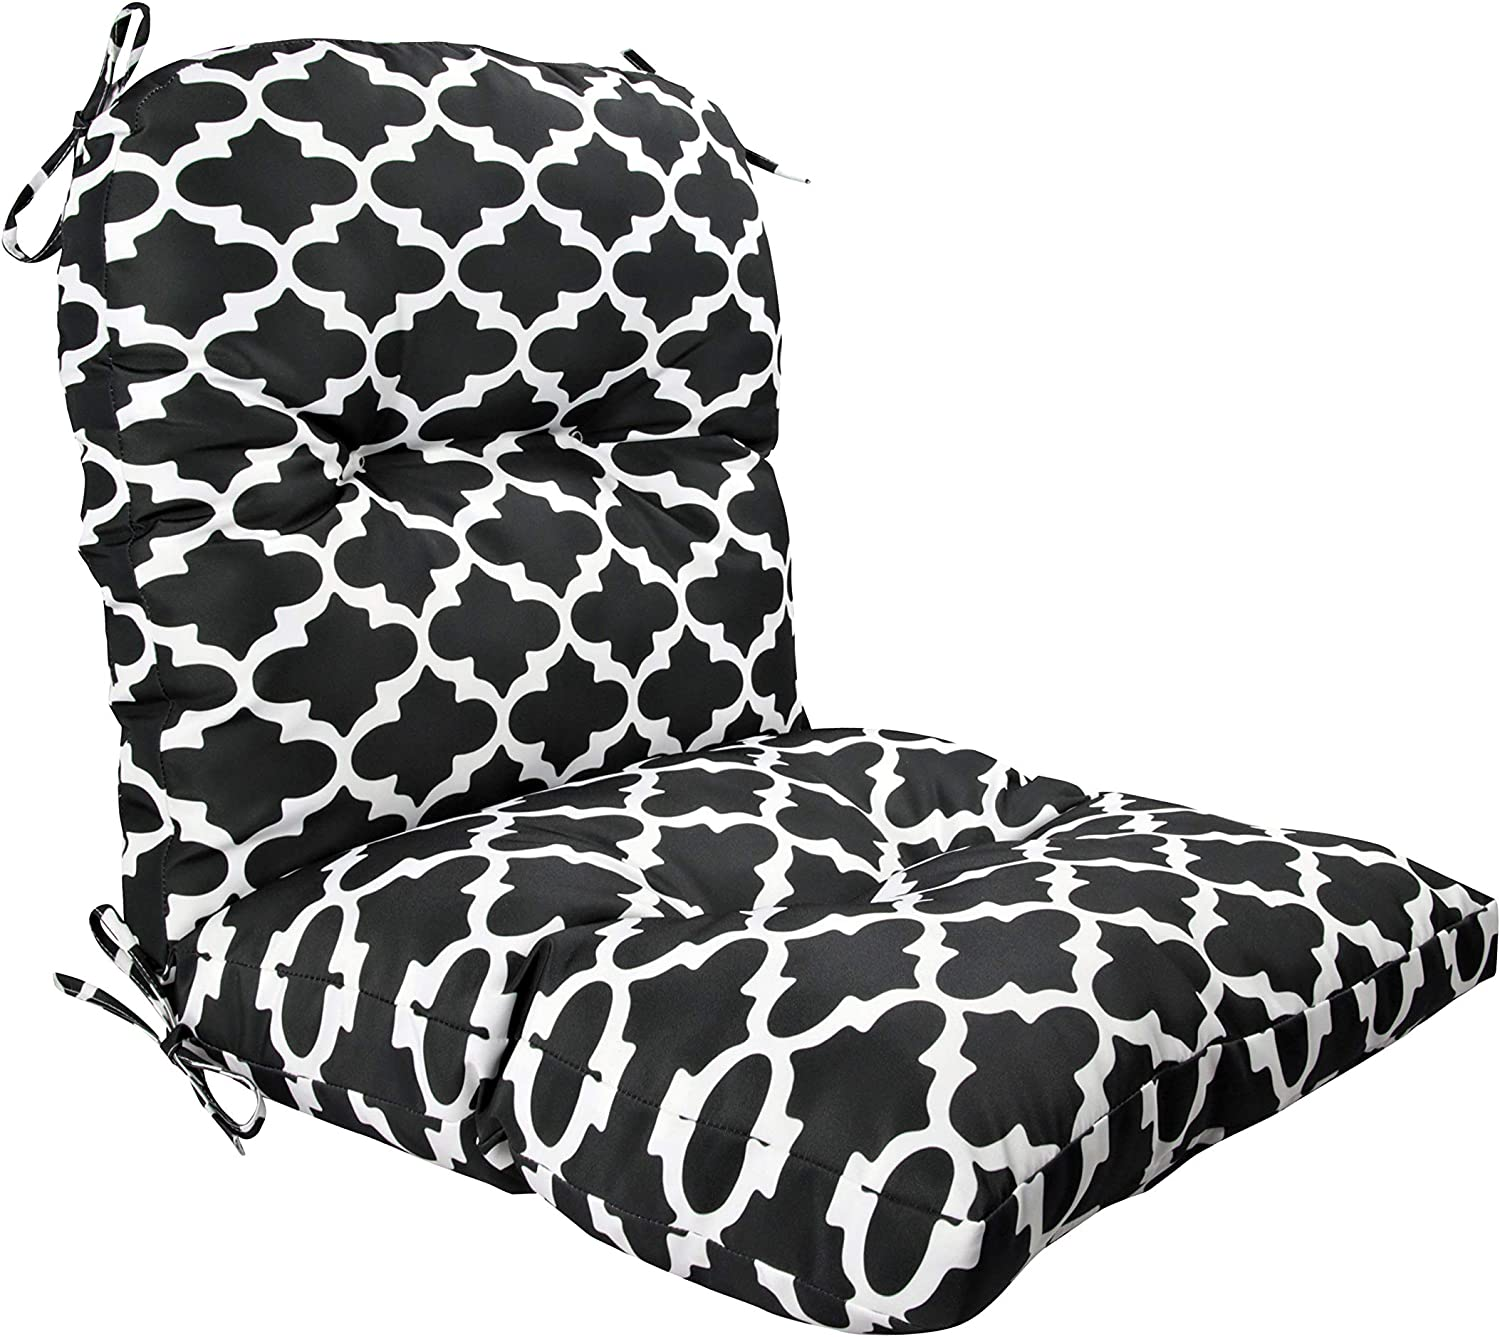 BOSSIMA Luxury goods Outdoor Indoor High San Antonio Mall Back R Cushions Chair Comfort Tufted